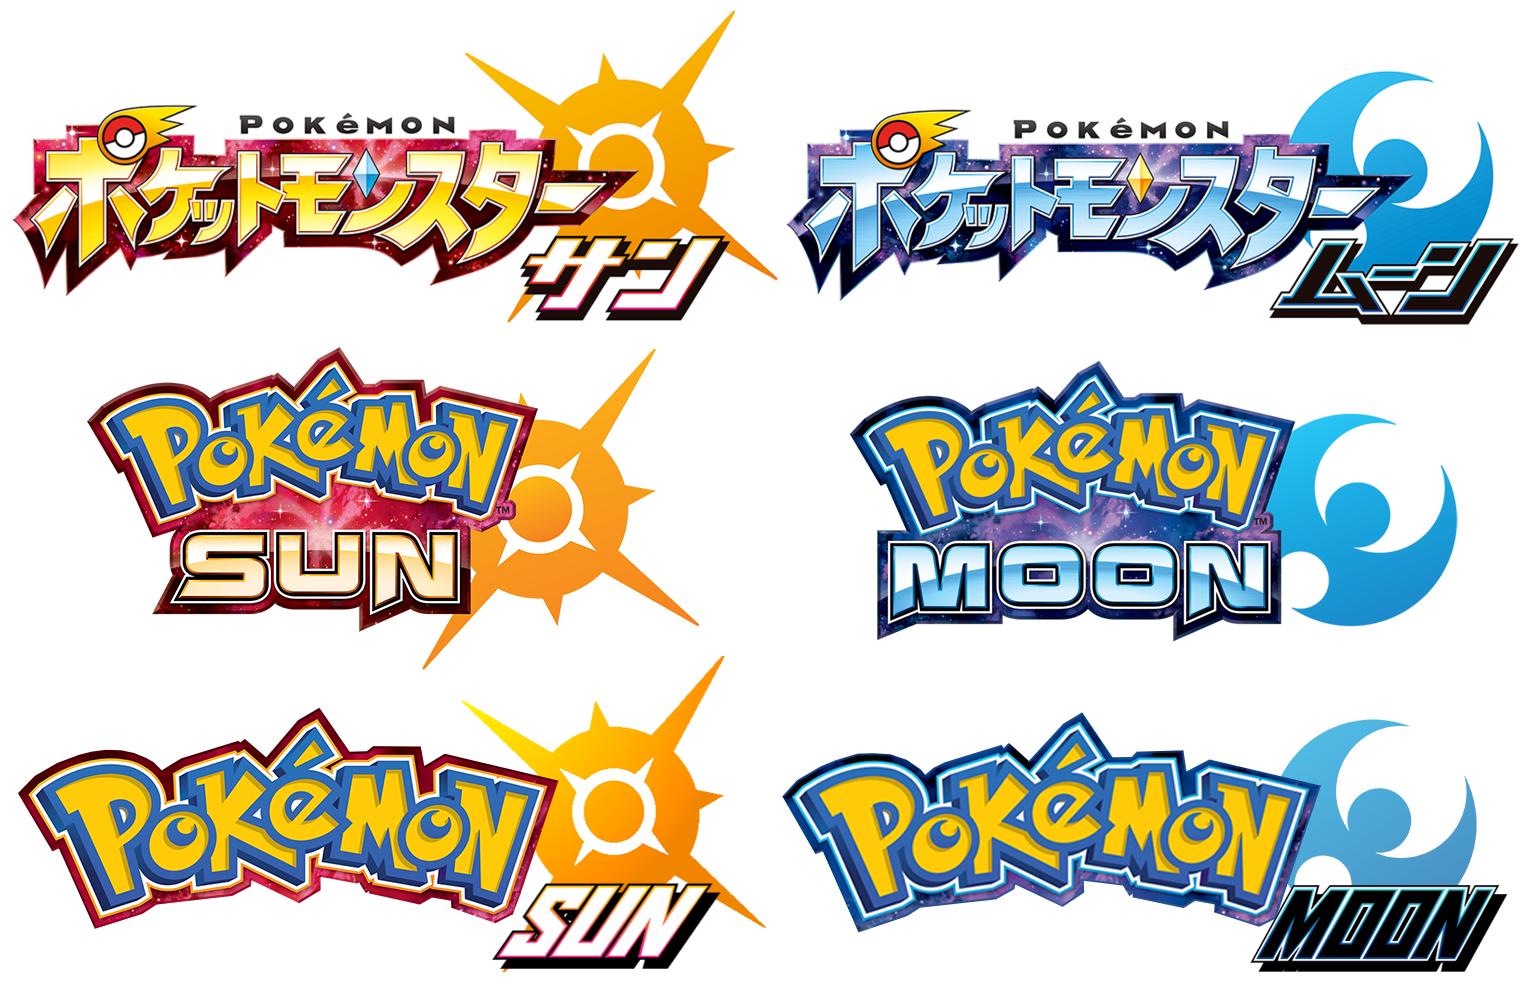 Pokemon Sun And Moon Logos Japanese To English 607783319